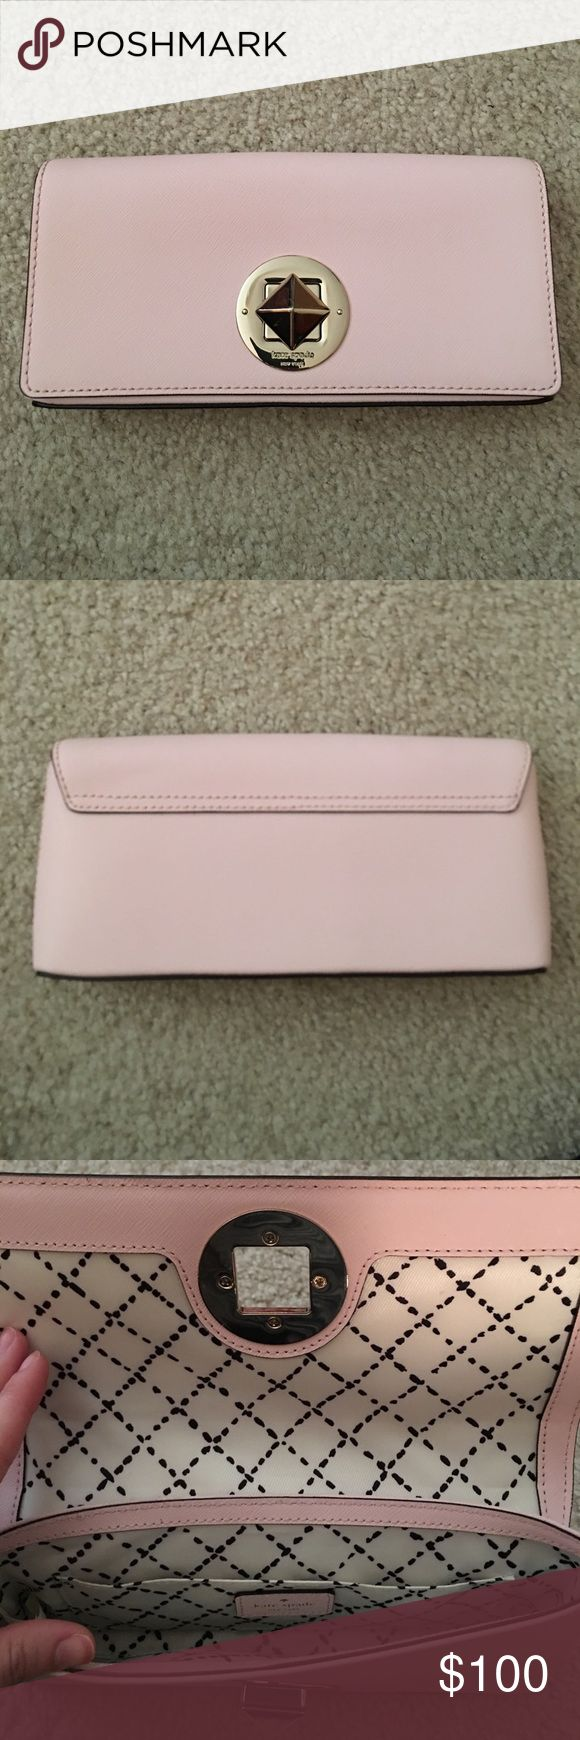 Kate Spade light pink clutch Kate Spade light pink clutch. In very good condition, just some slight scratches on the lock but not noticeable. Only used a few times. kate spade Bags Clutches & Wristlets